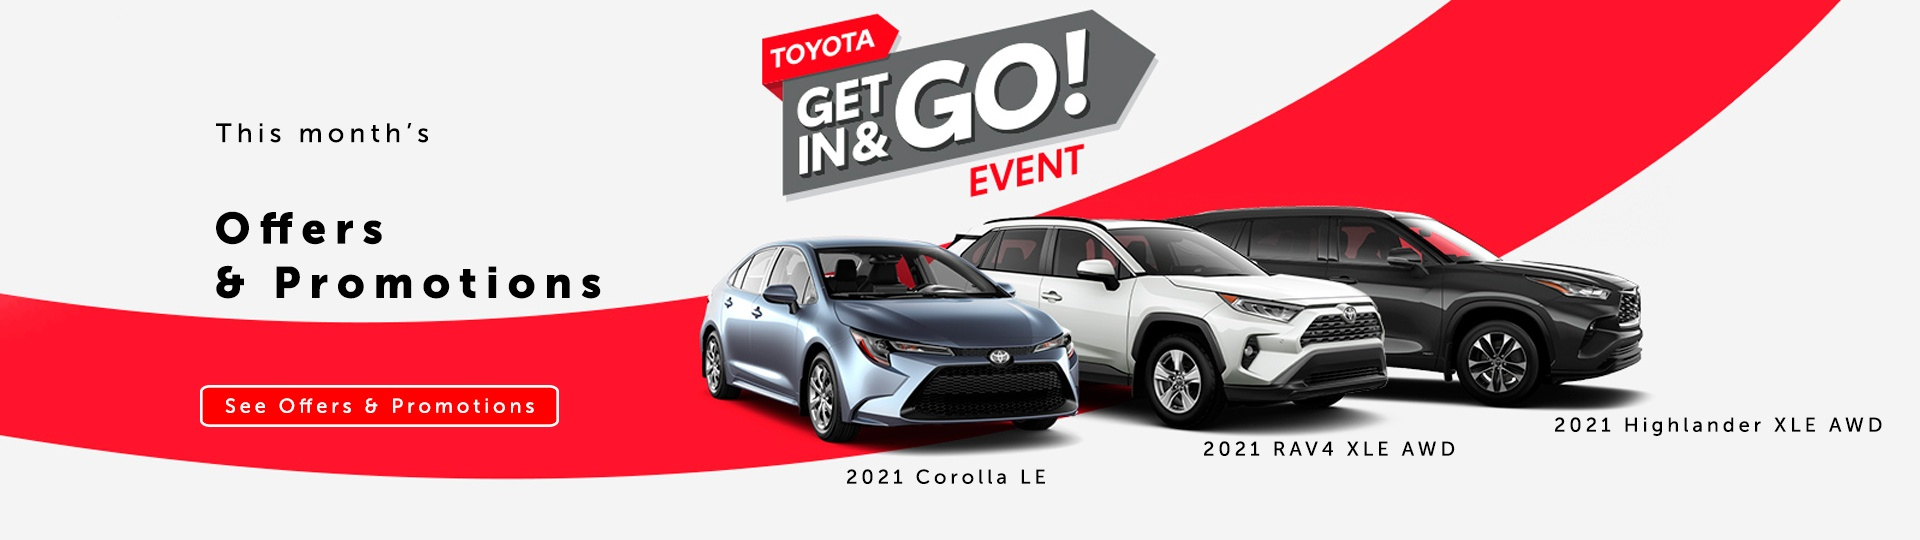 Toyota Get in & go event